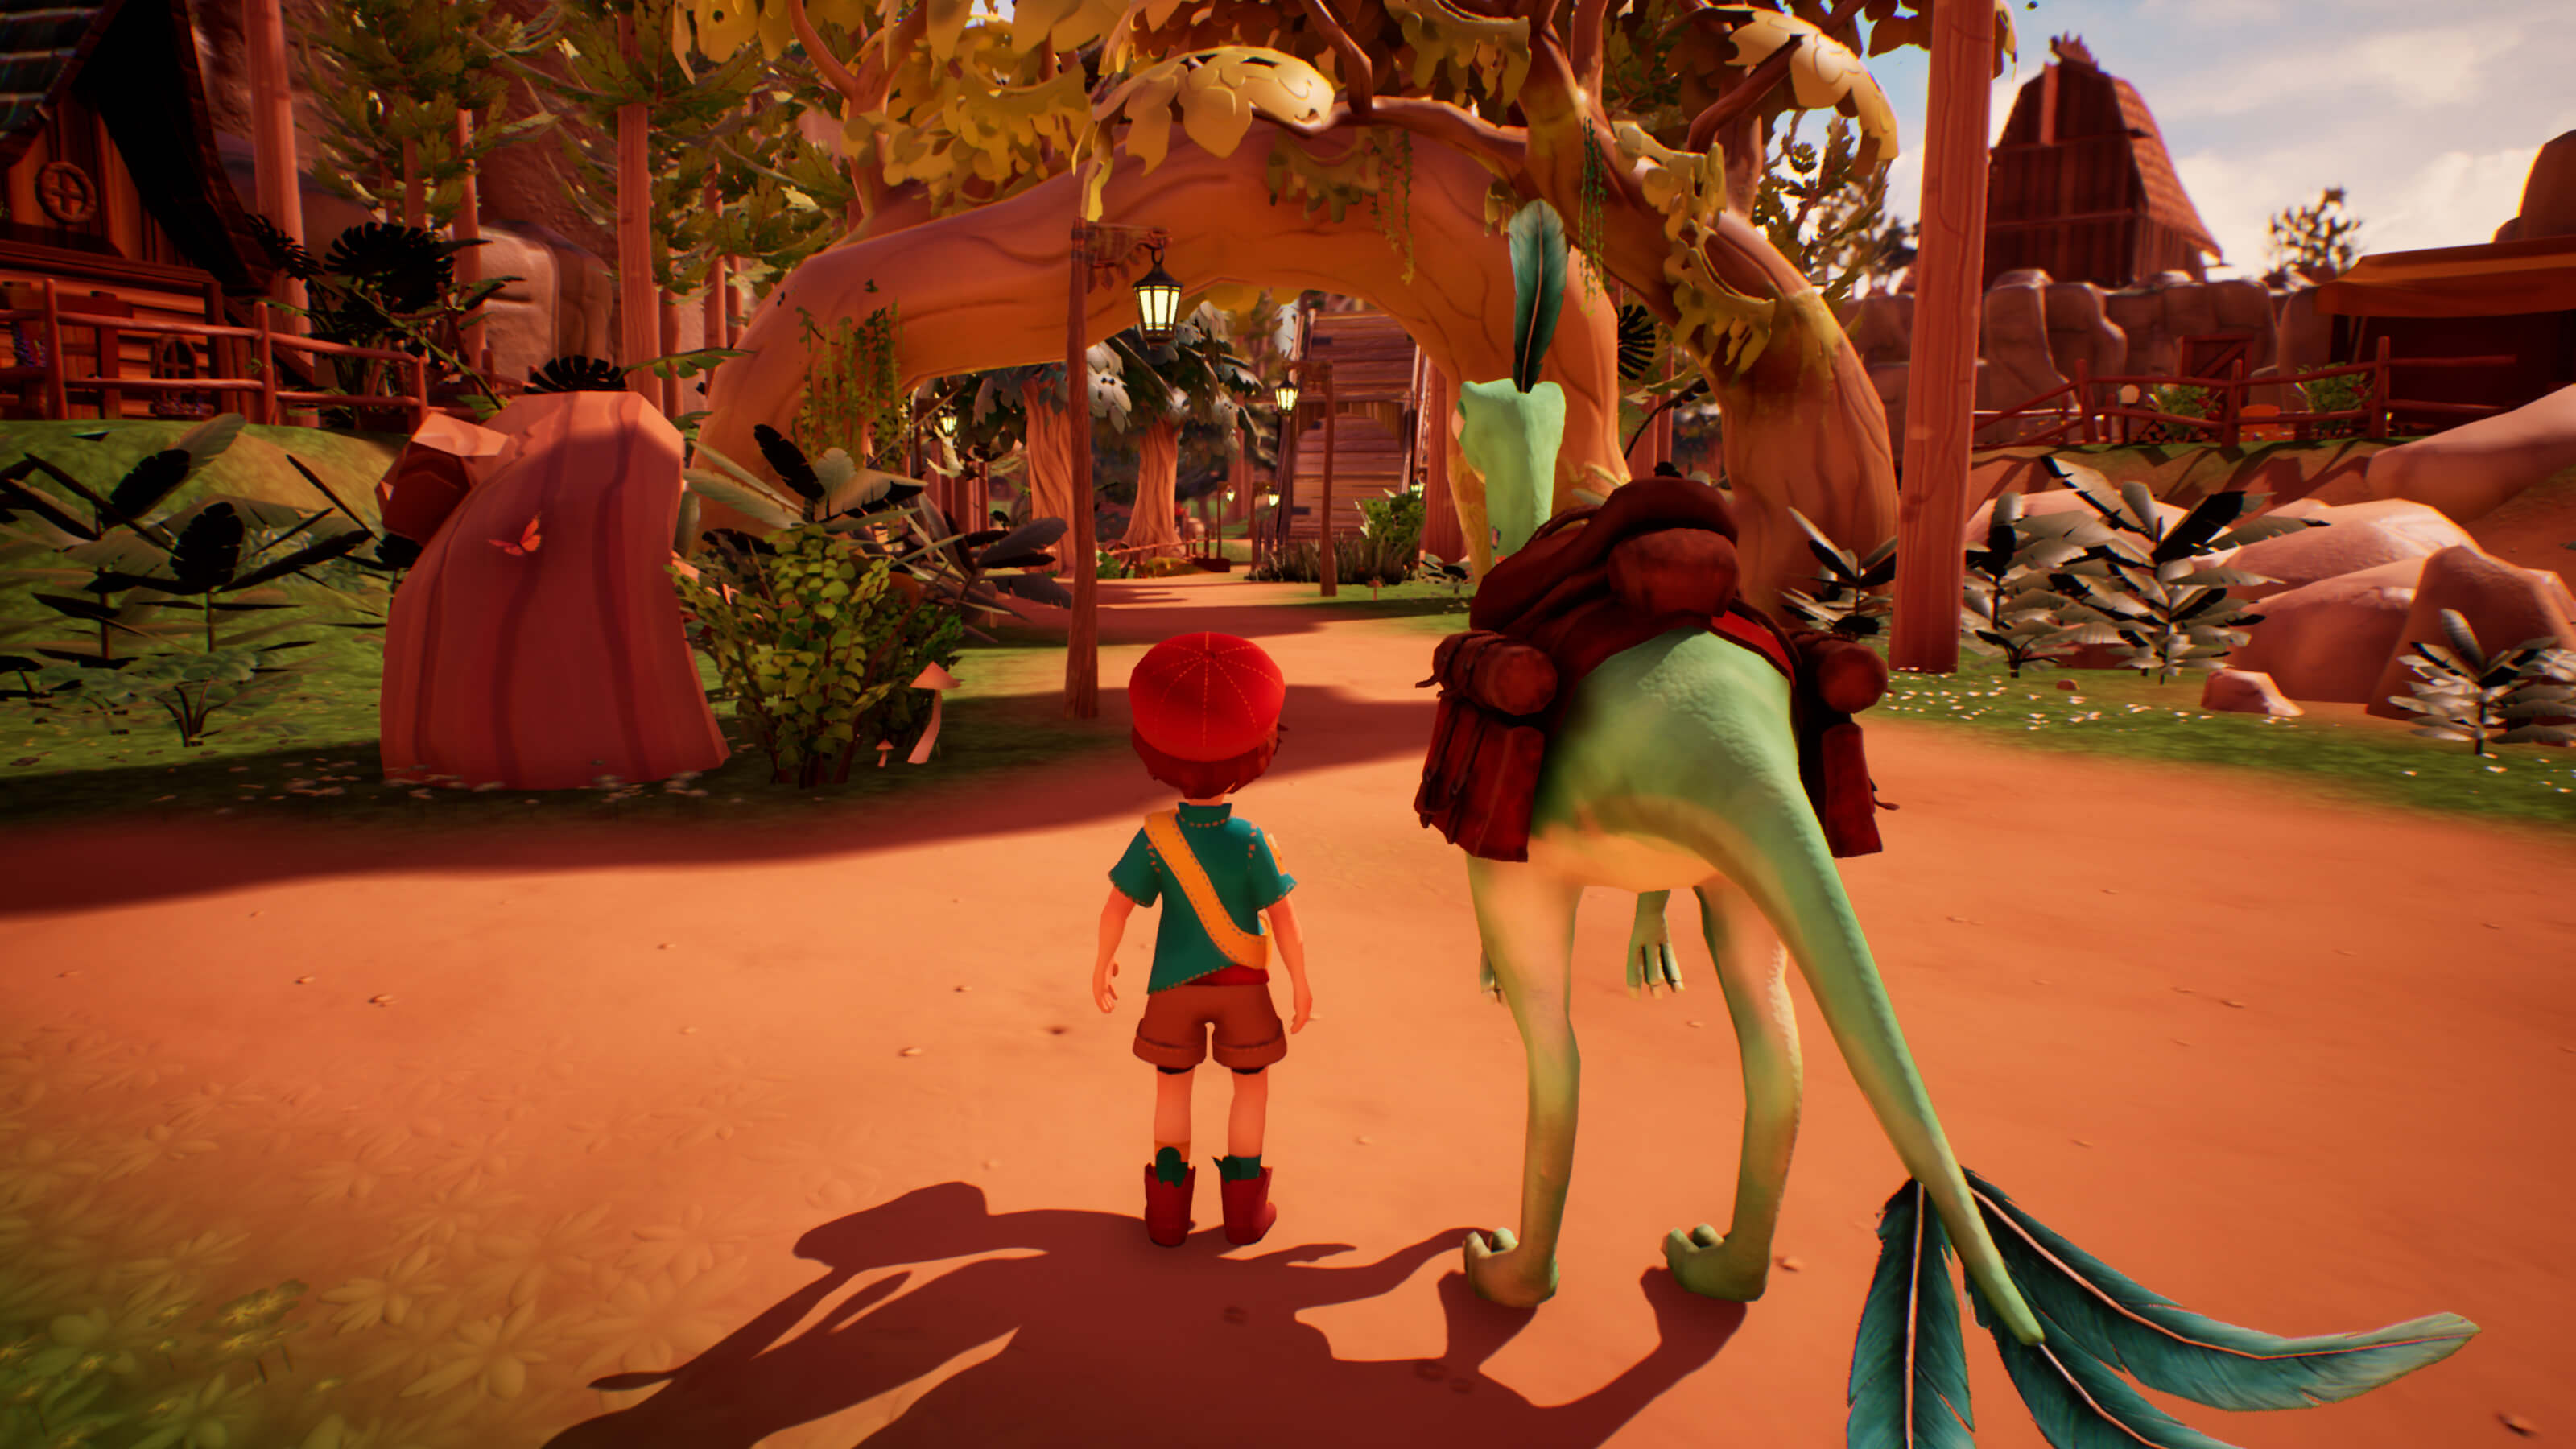 A boy stands next to his saddled-up dinosaur in the town of Cretaceous Cliffs.